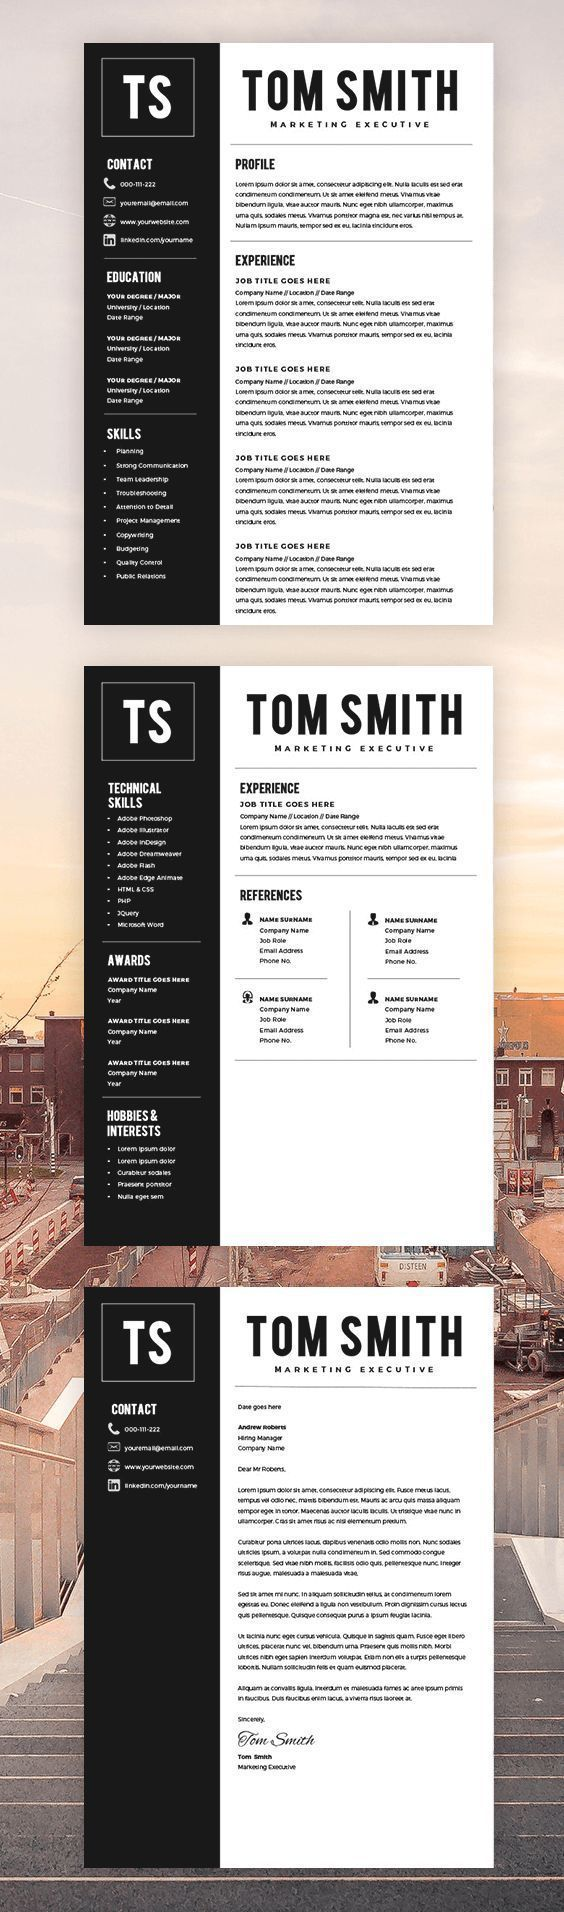 receptionist sample resume%0A Two Page Resume Template  Resume Builder  CV Template  Free Cover Letter   MS